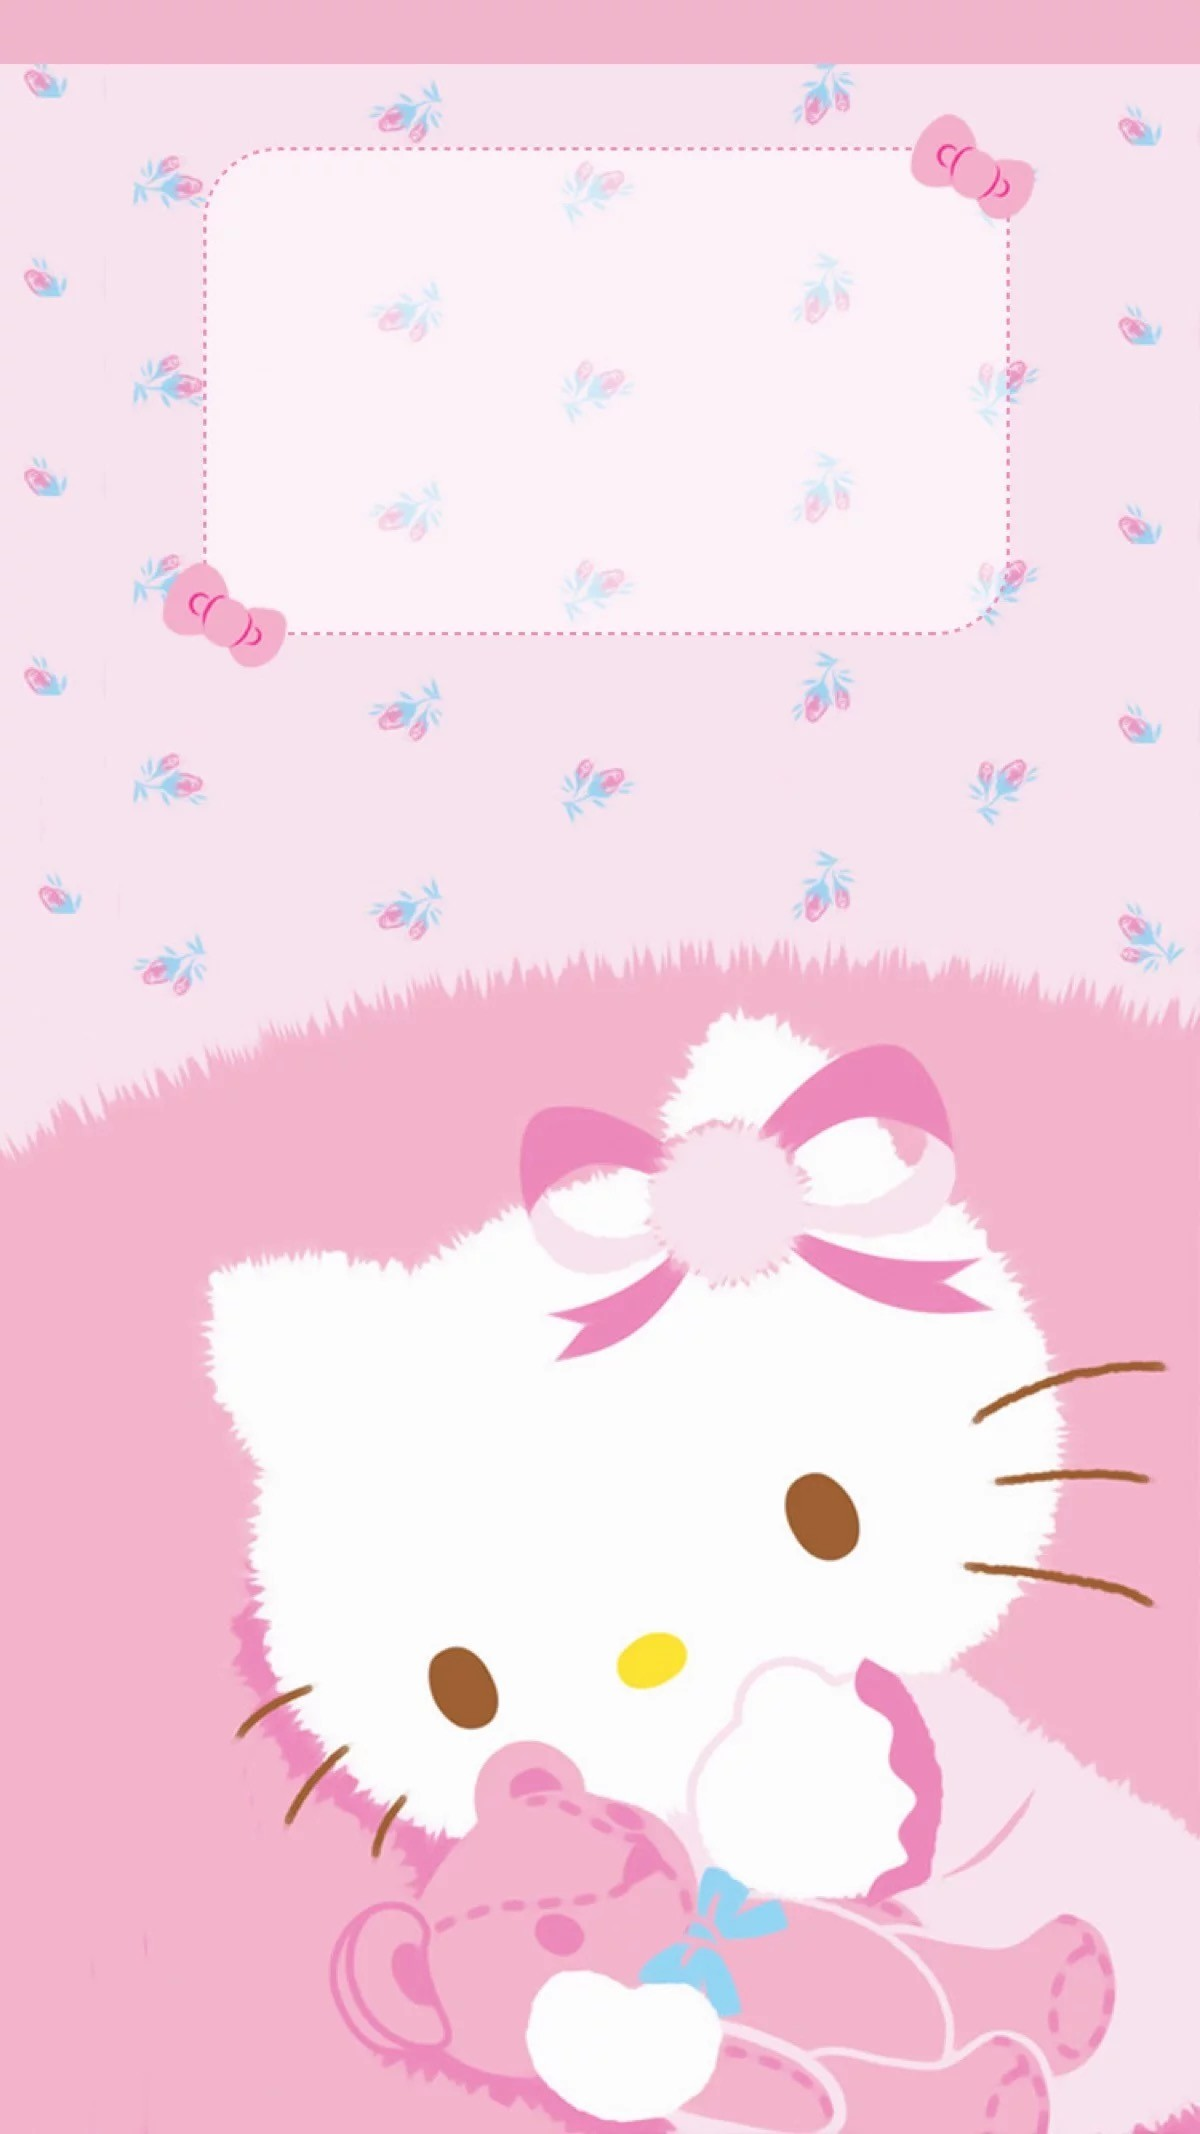 Most Inspiring Wallpaper Hello Kitty Ipad - 875764-top-hello-kitty-winter-wallpaper-1200x2134-computer  Picture_715443.jpg